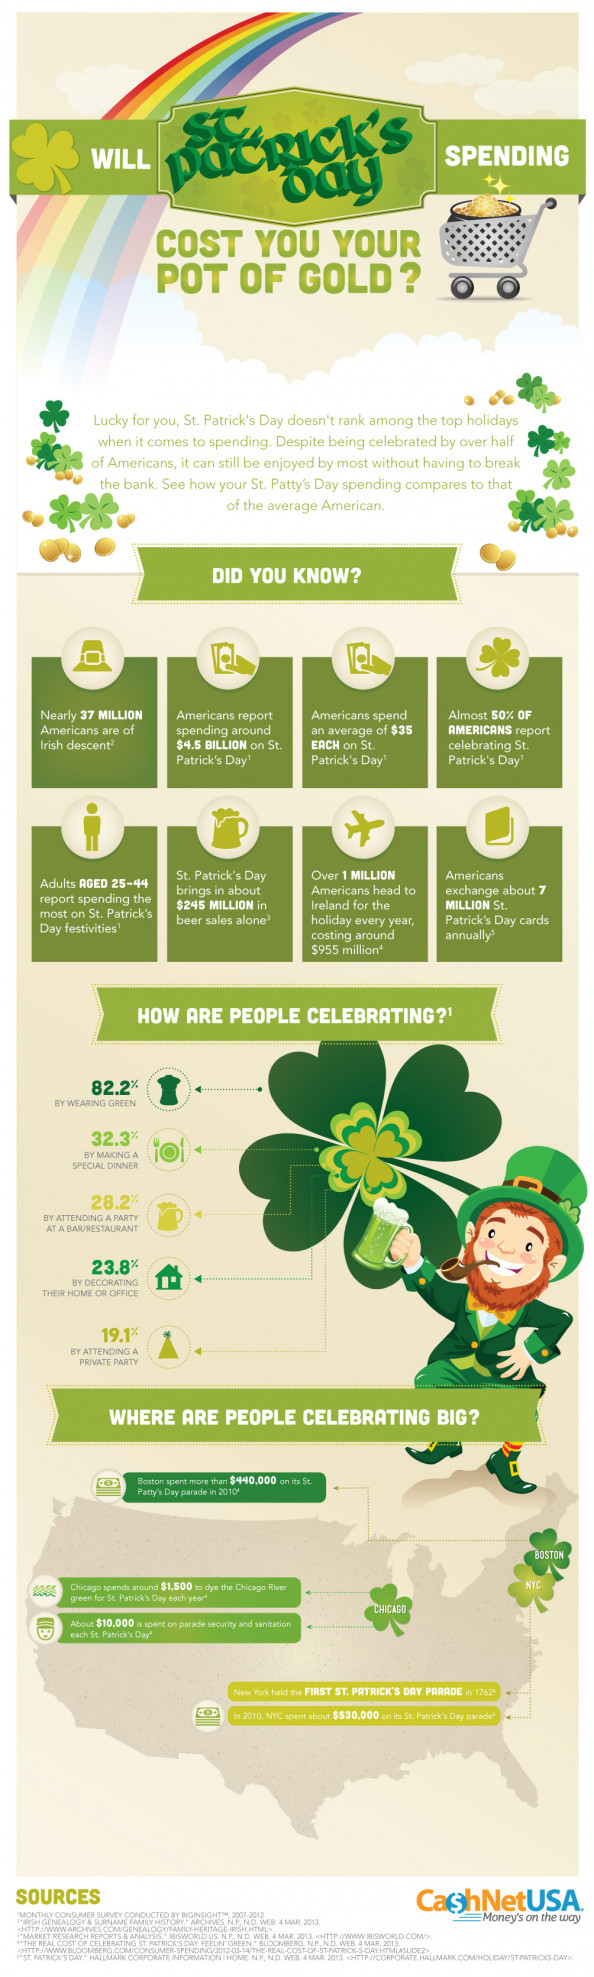 Will St. Patrick's Day Spending Cost You Your Pot of Gold?  Infographic